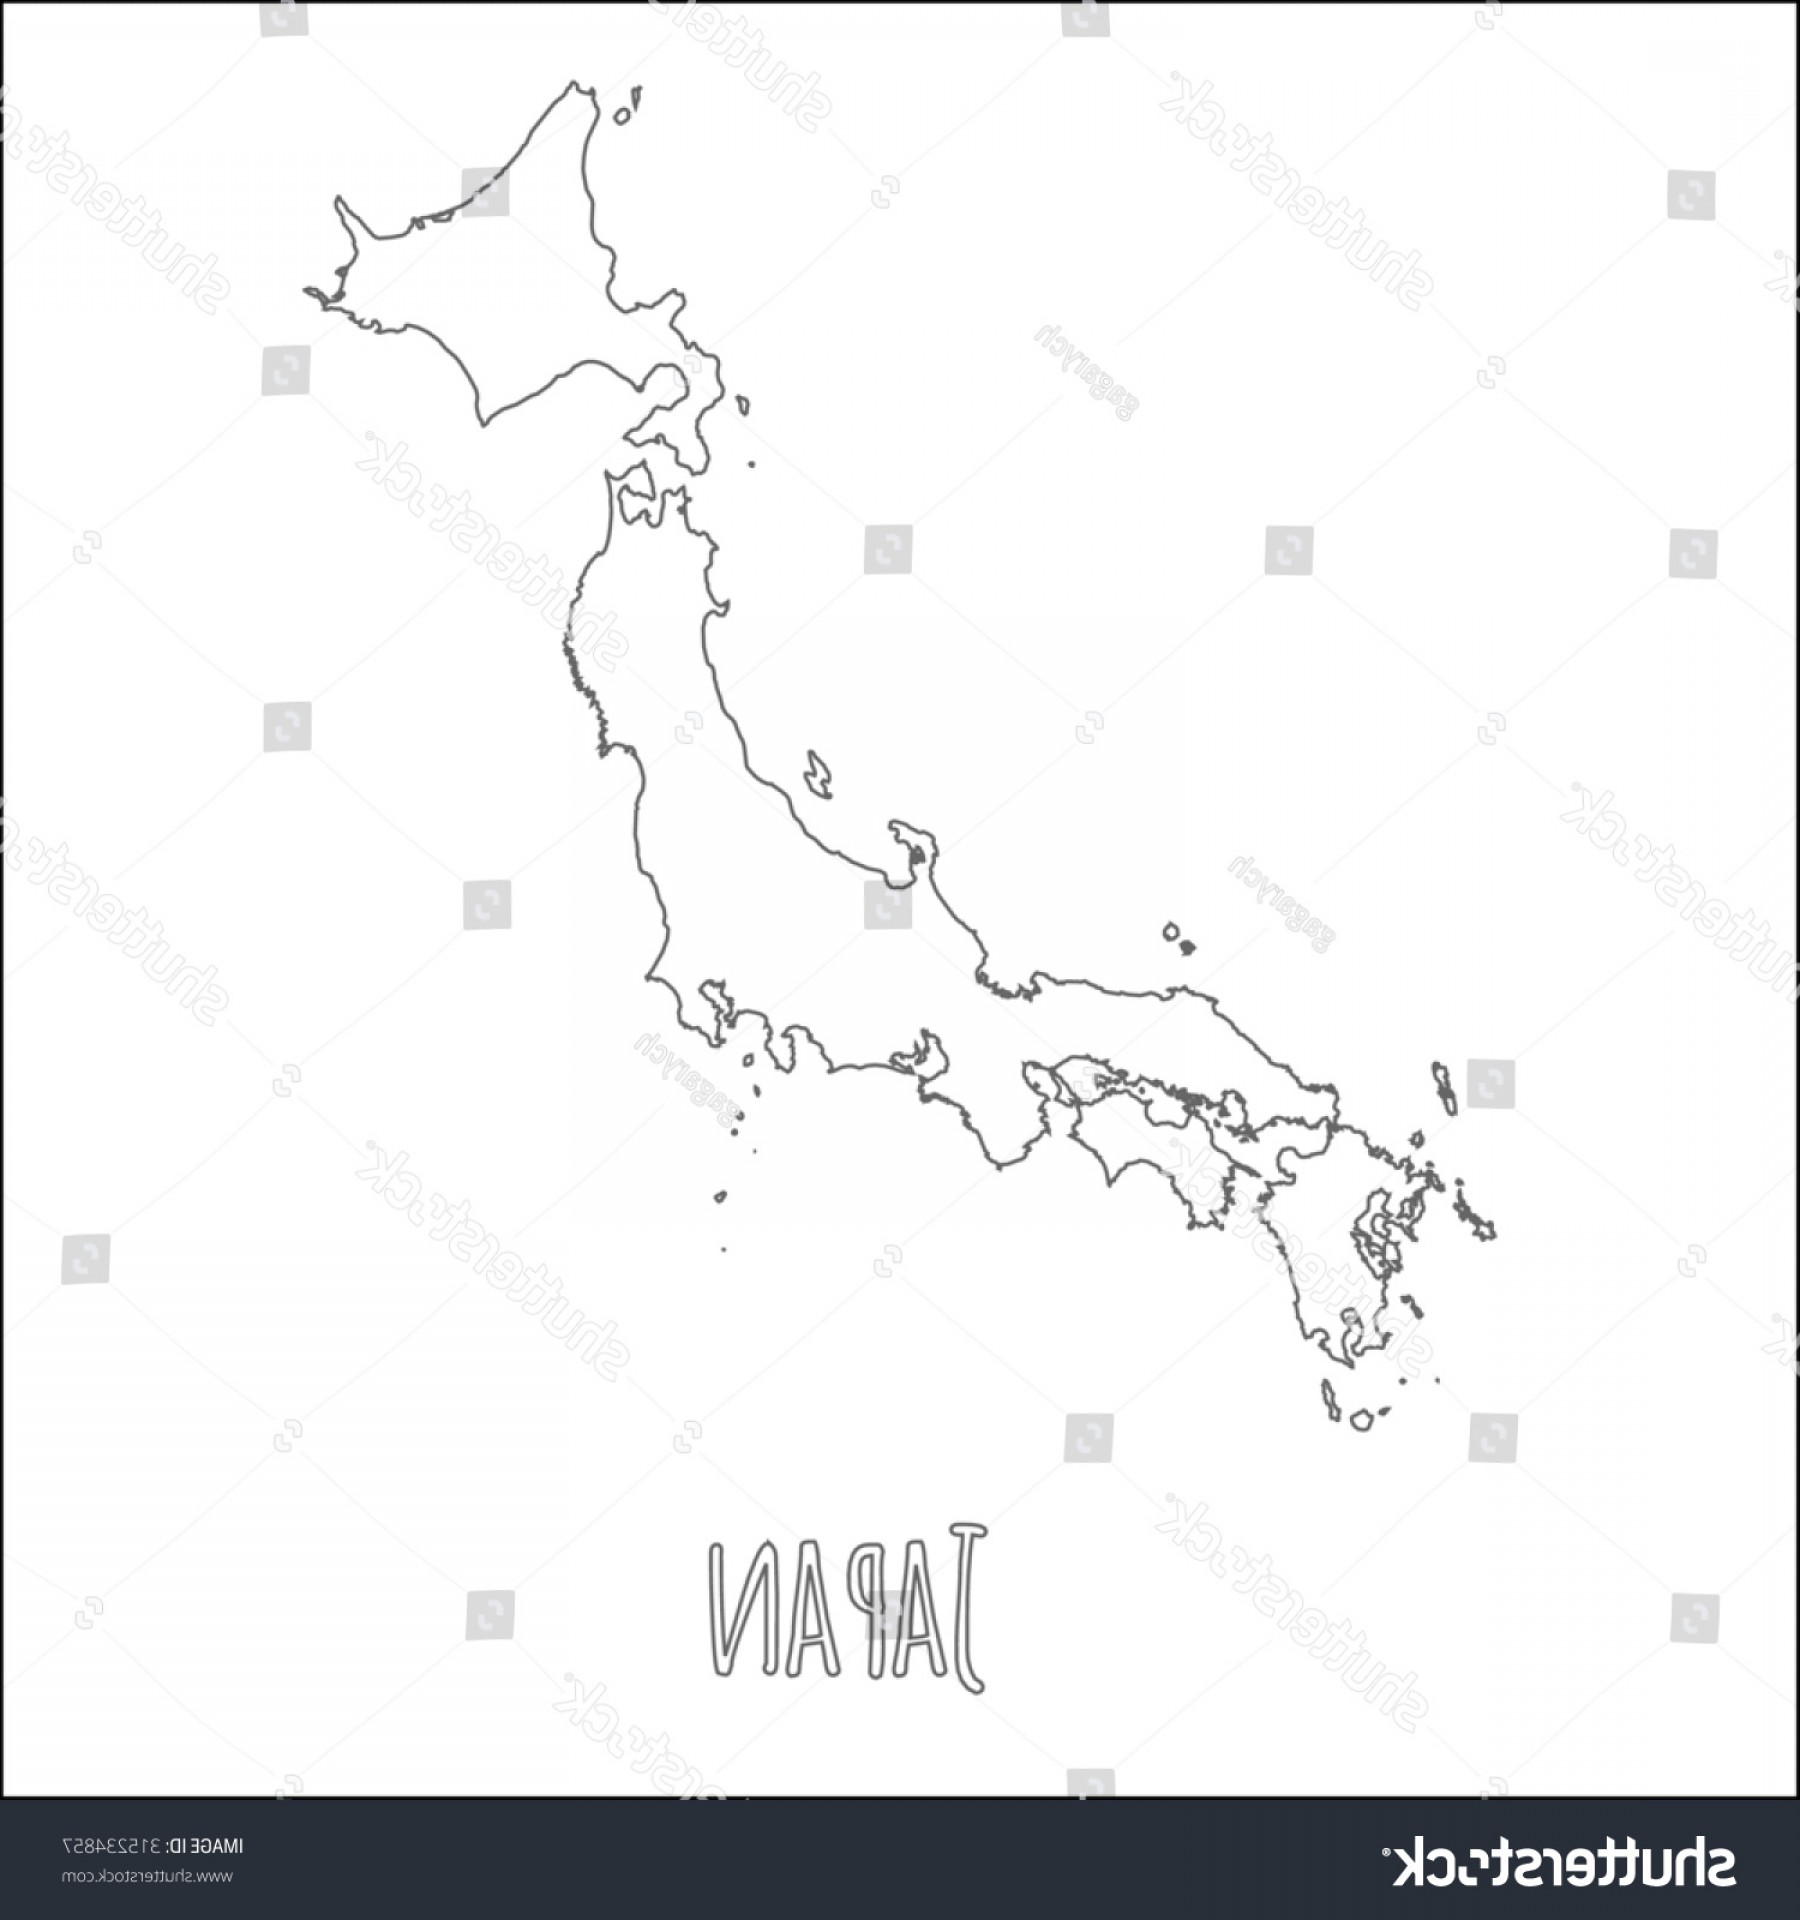 Japan Map Vector: Outline Vector Map Japan Simple Border